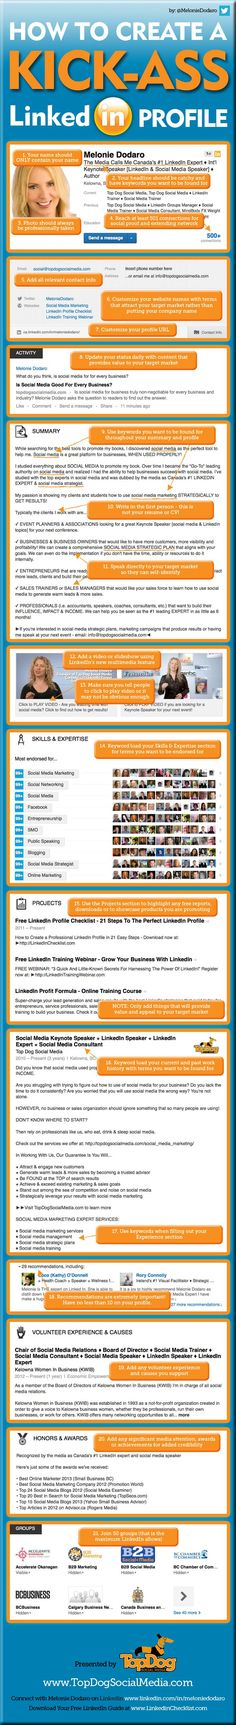 A suggested guide to improving your LinkedIn presence to generate iterative and engaging LinkedIn marketing.